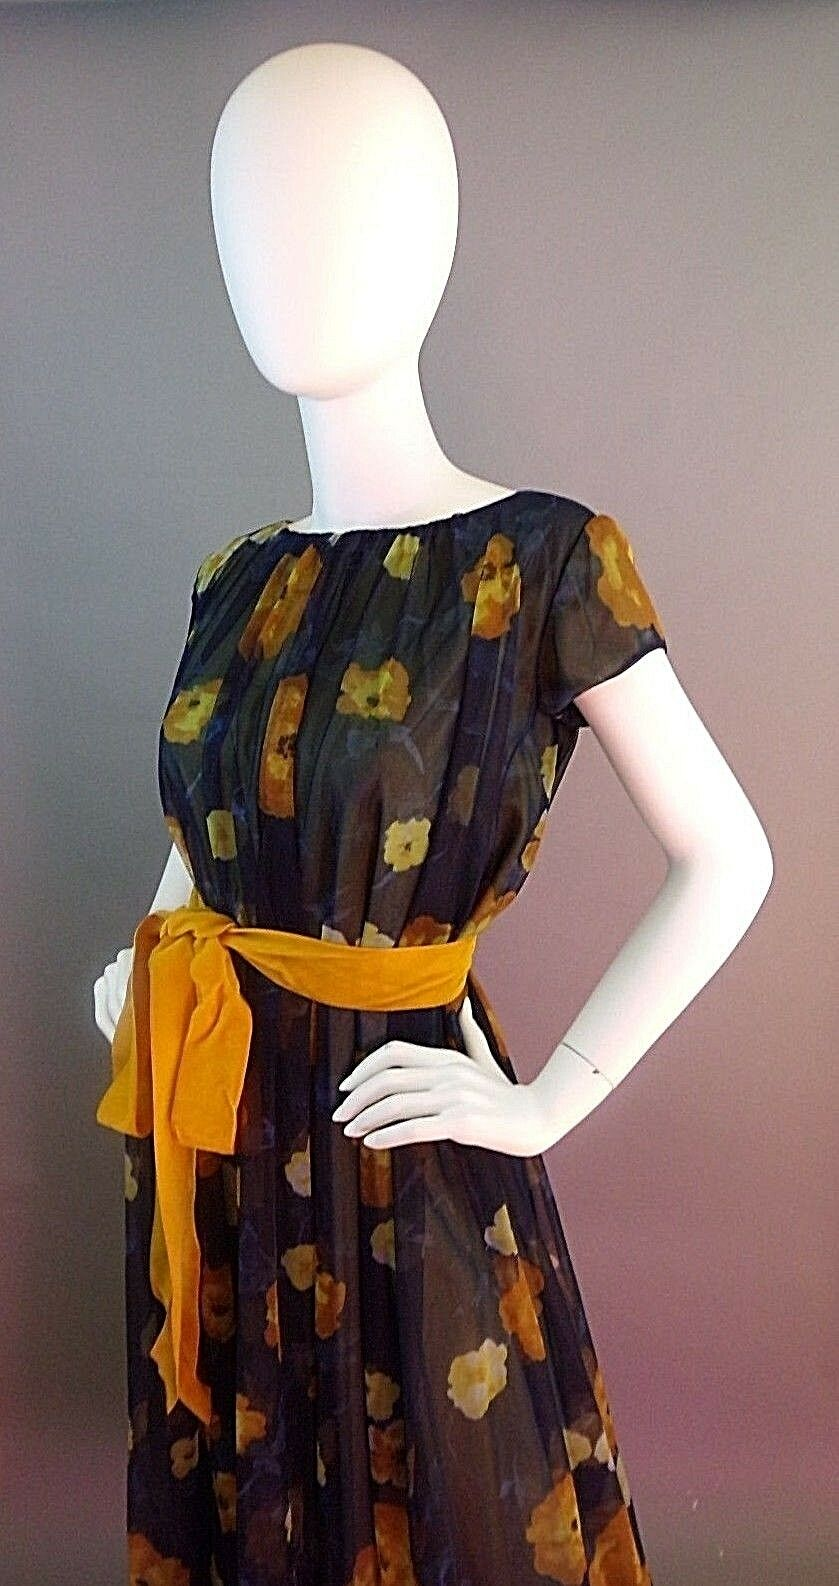 VINTAGE LUCIE ANN BEVERLY HILLS 1950s NIGHTGOWN - image 7